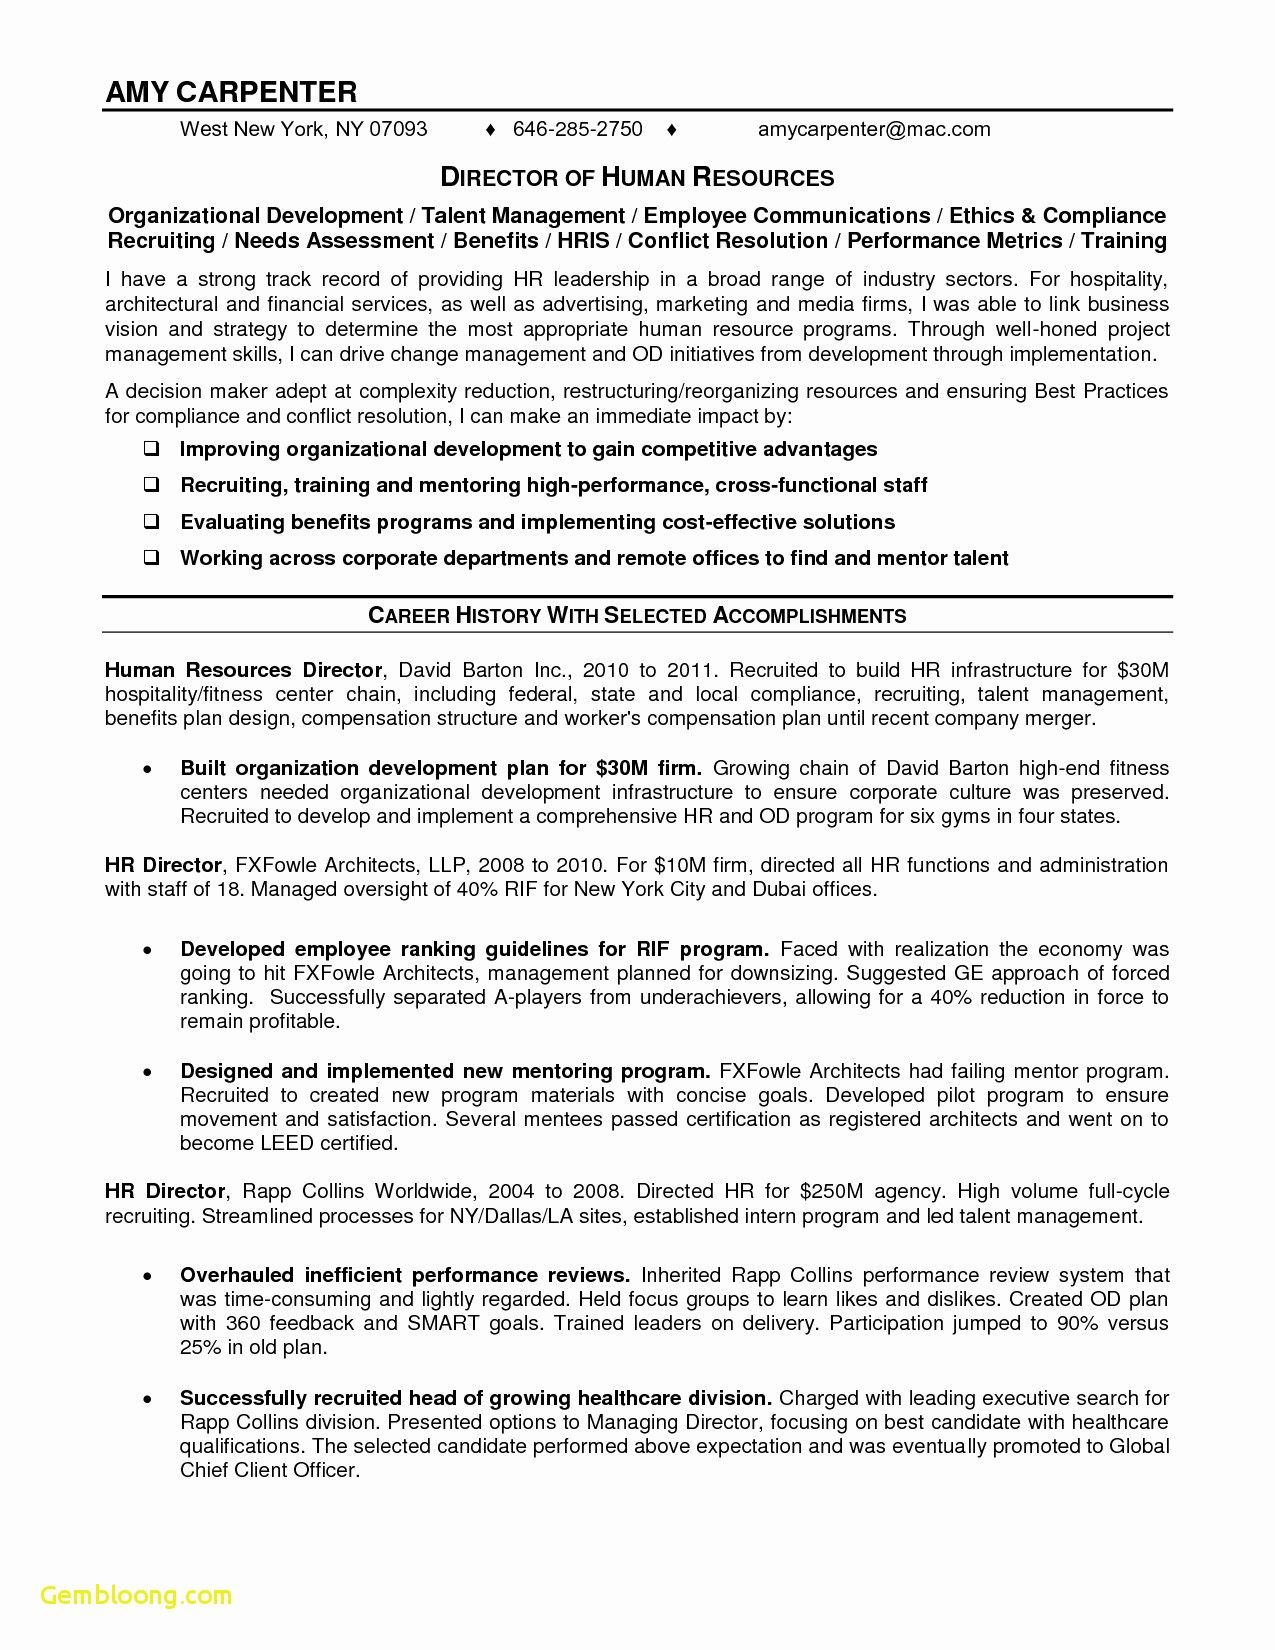 27+ Cover Letter For Apple | Resume Cover Letter Example | Pinterest ...